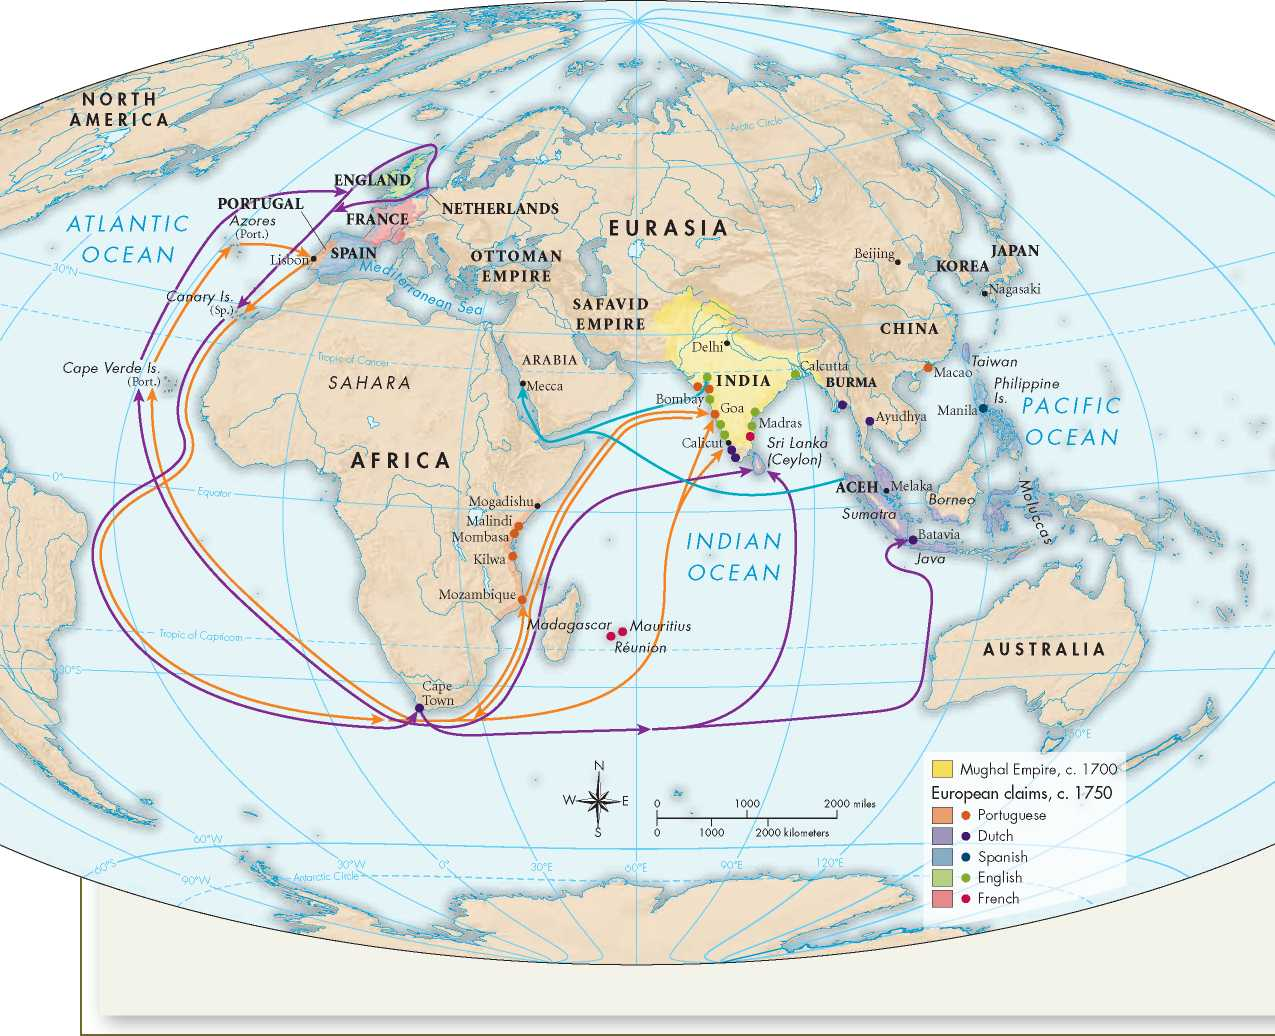 indian ocean region from 650 to 1750 Learn ccot essays unit 4 whap facts using a simple interactive process (flashcard, matching, or multiple choice) finally a format that helps you memorize and understand browse or search in thousands of pages or create your own page using a simple wizard no signup required.